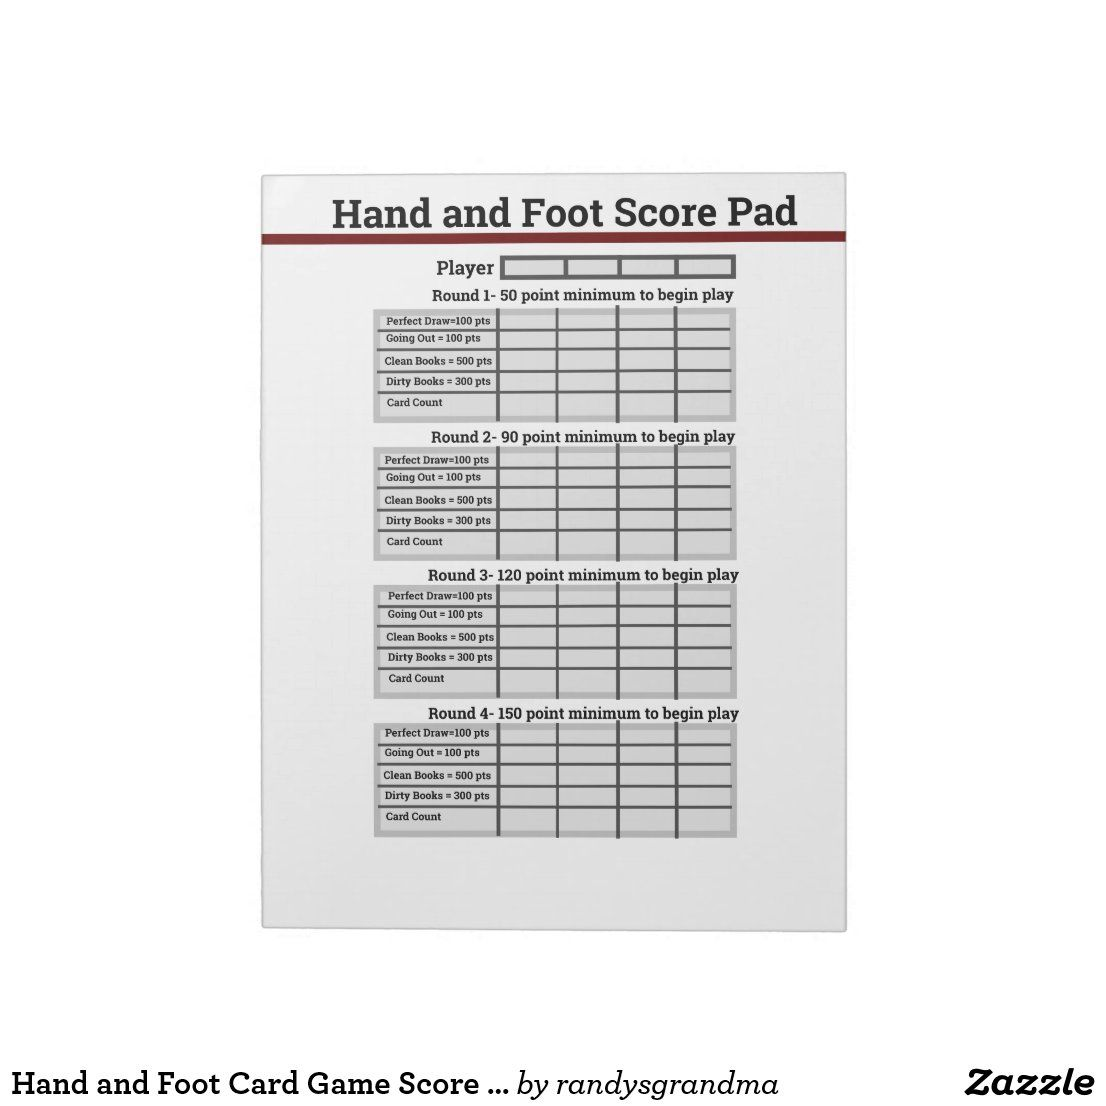 Hand and foot card game score pad in 2020